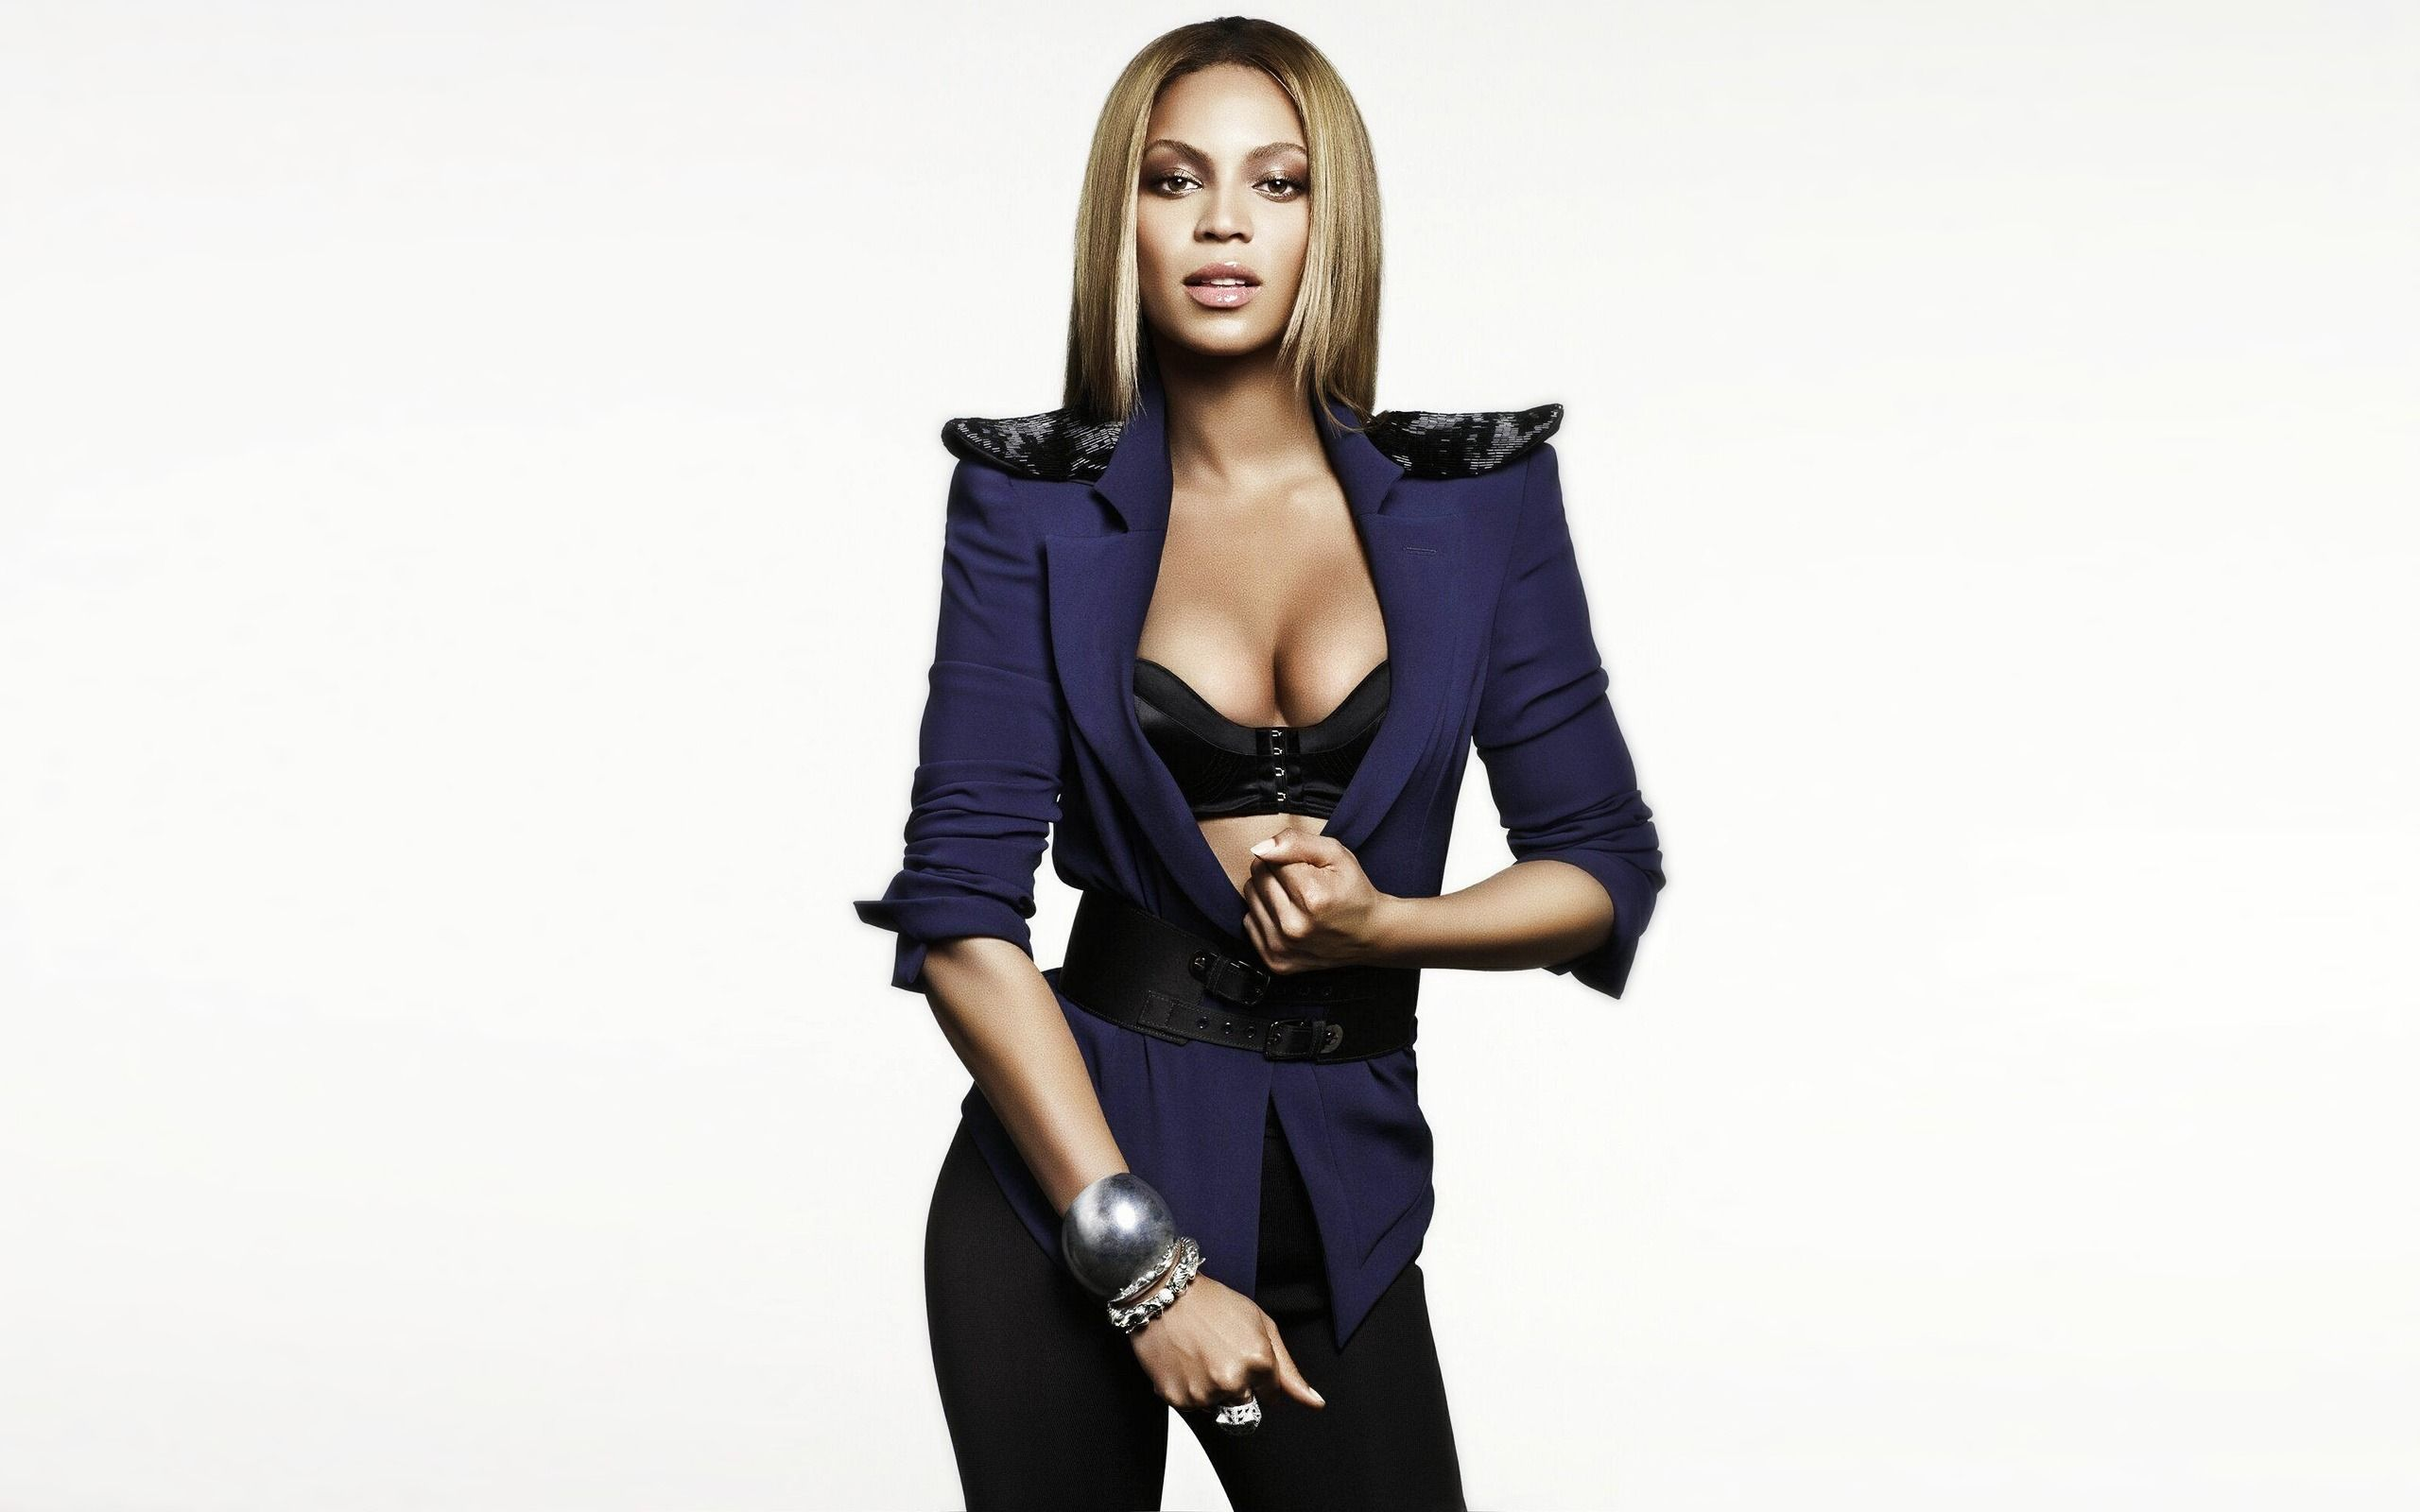 Beyonce Wallpapers,Backgrounds,Pictures,Photos,Laptop